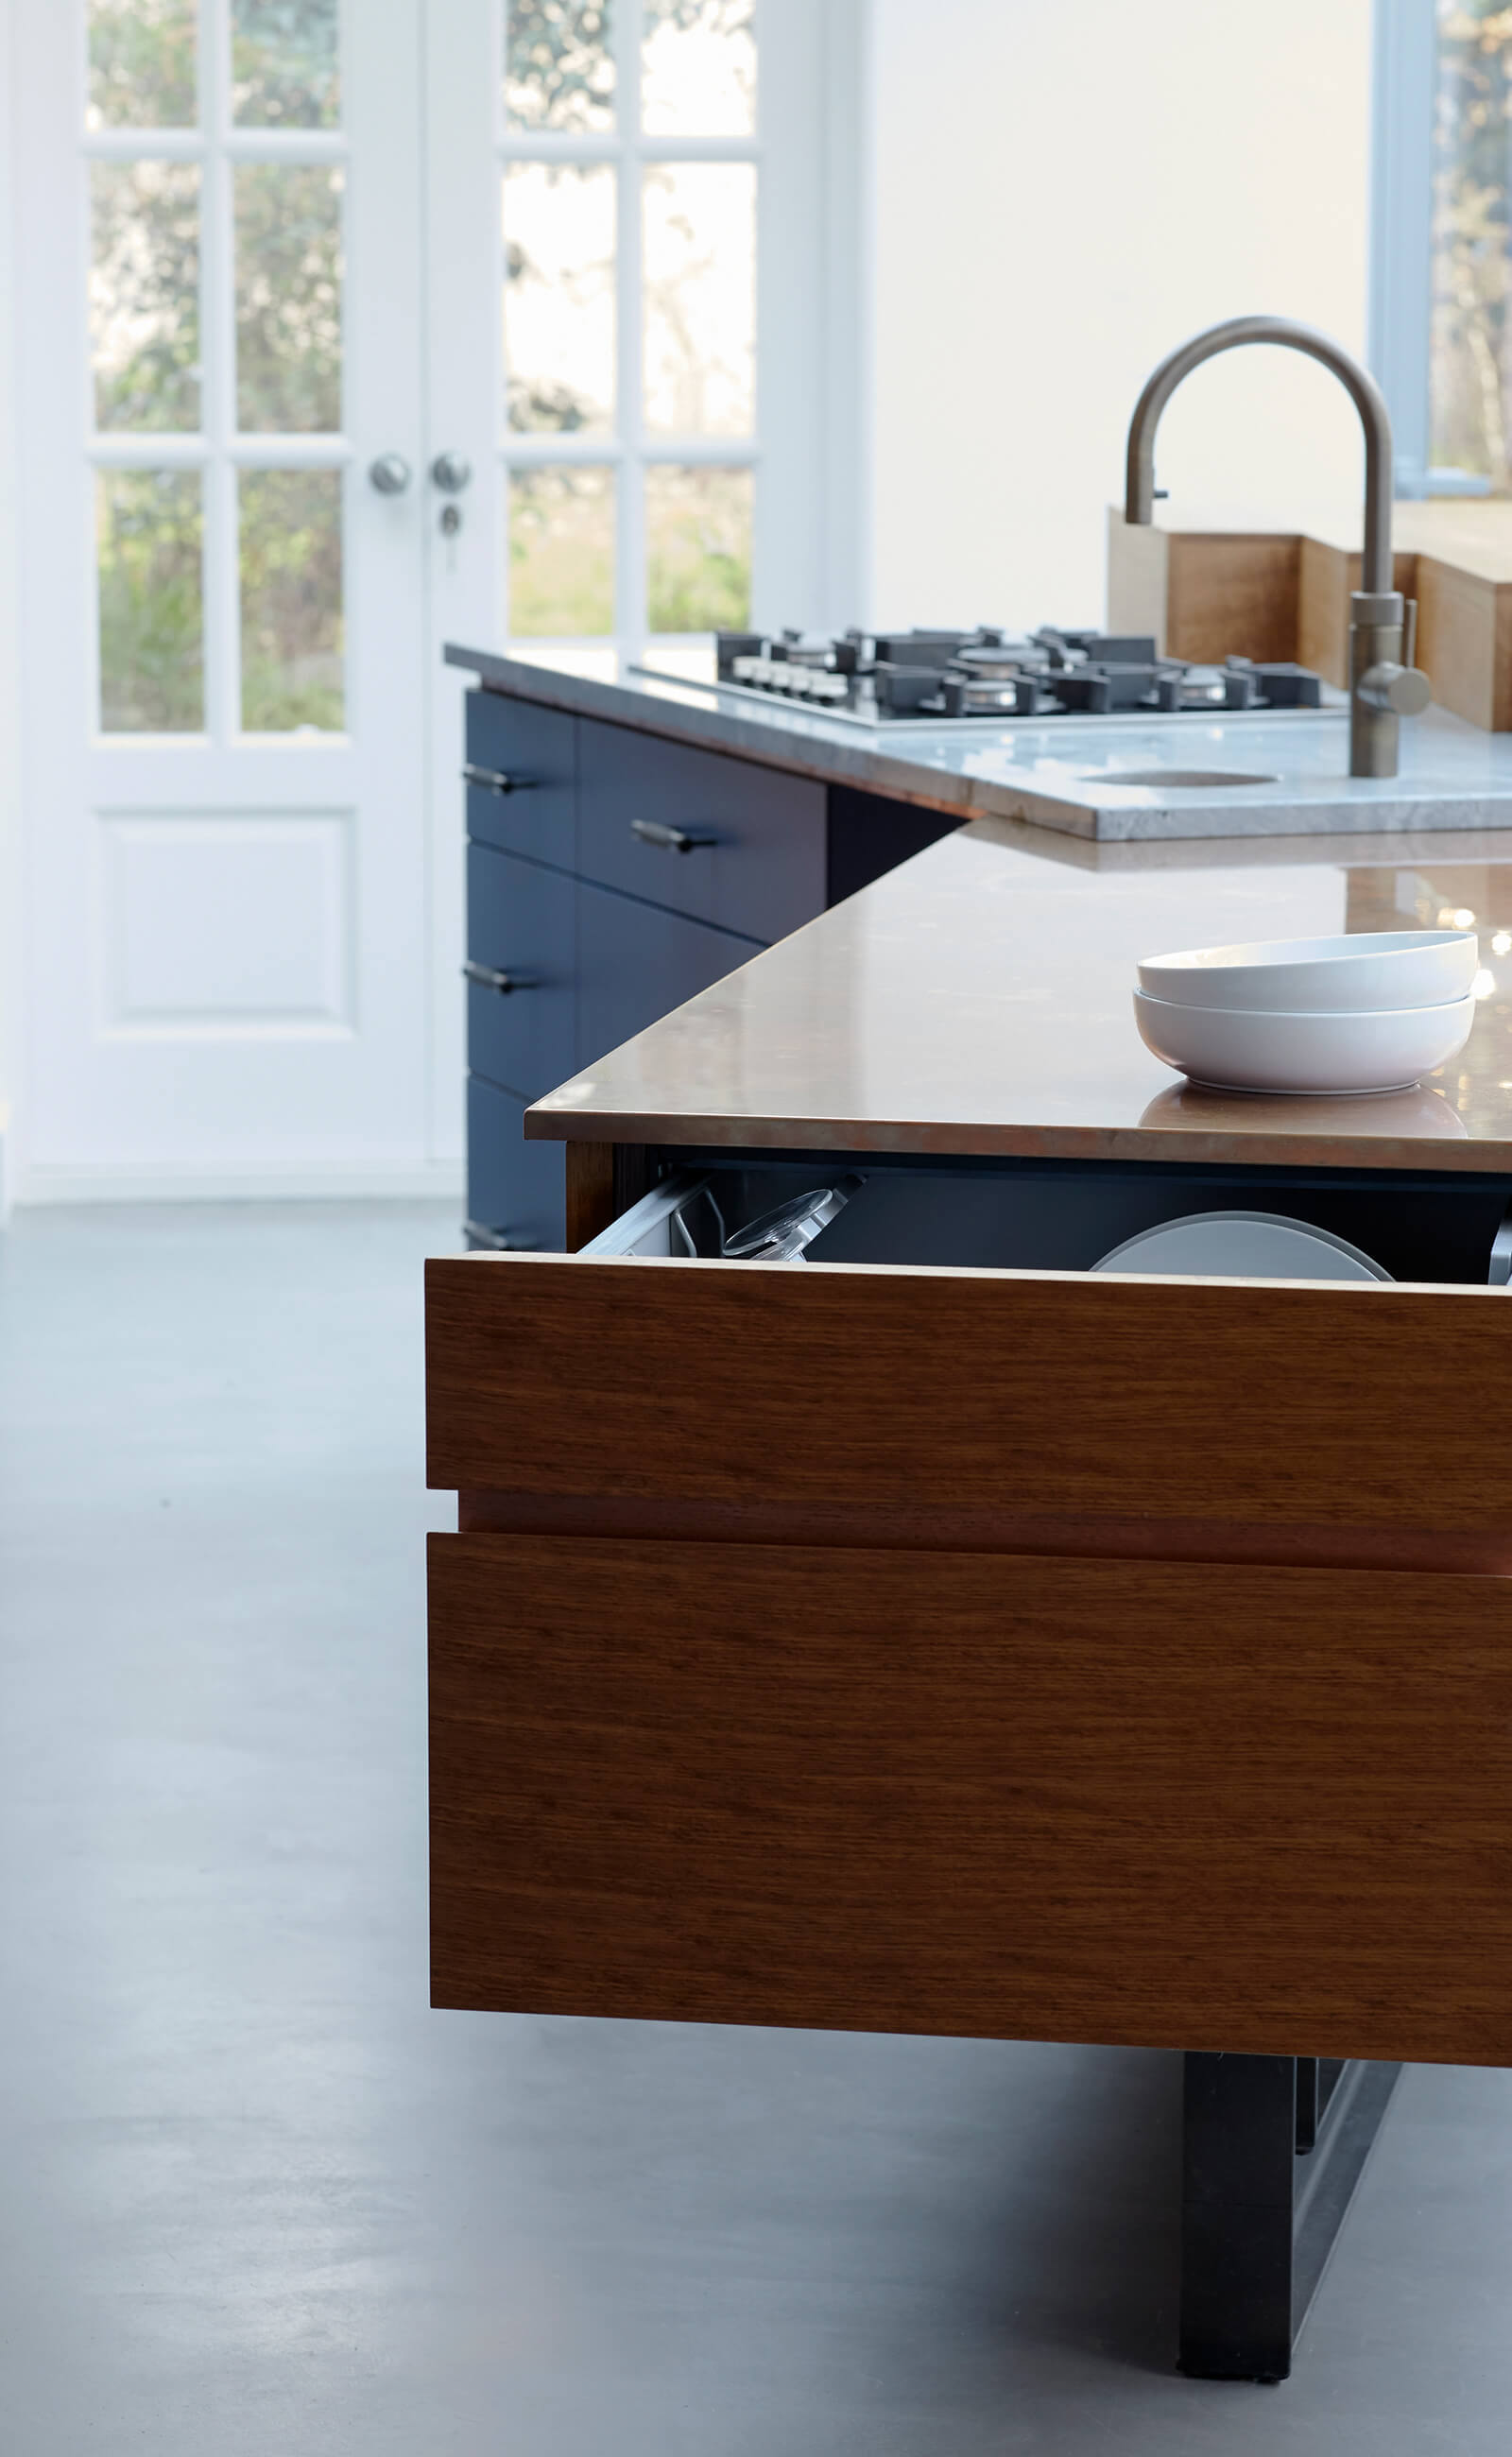 Clever dishwasher drawer storage in fun family kitchen